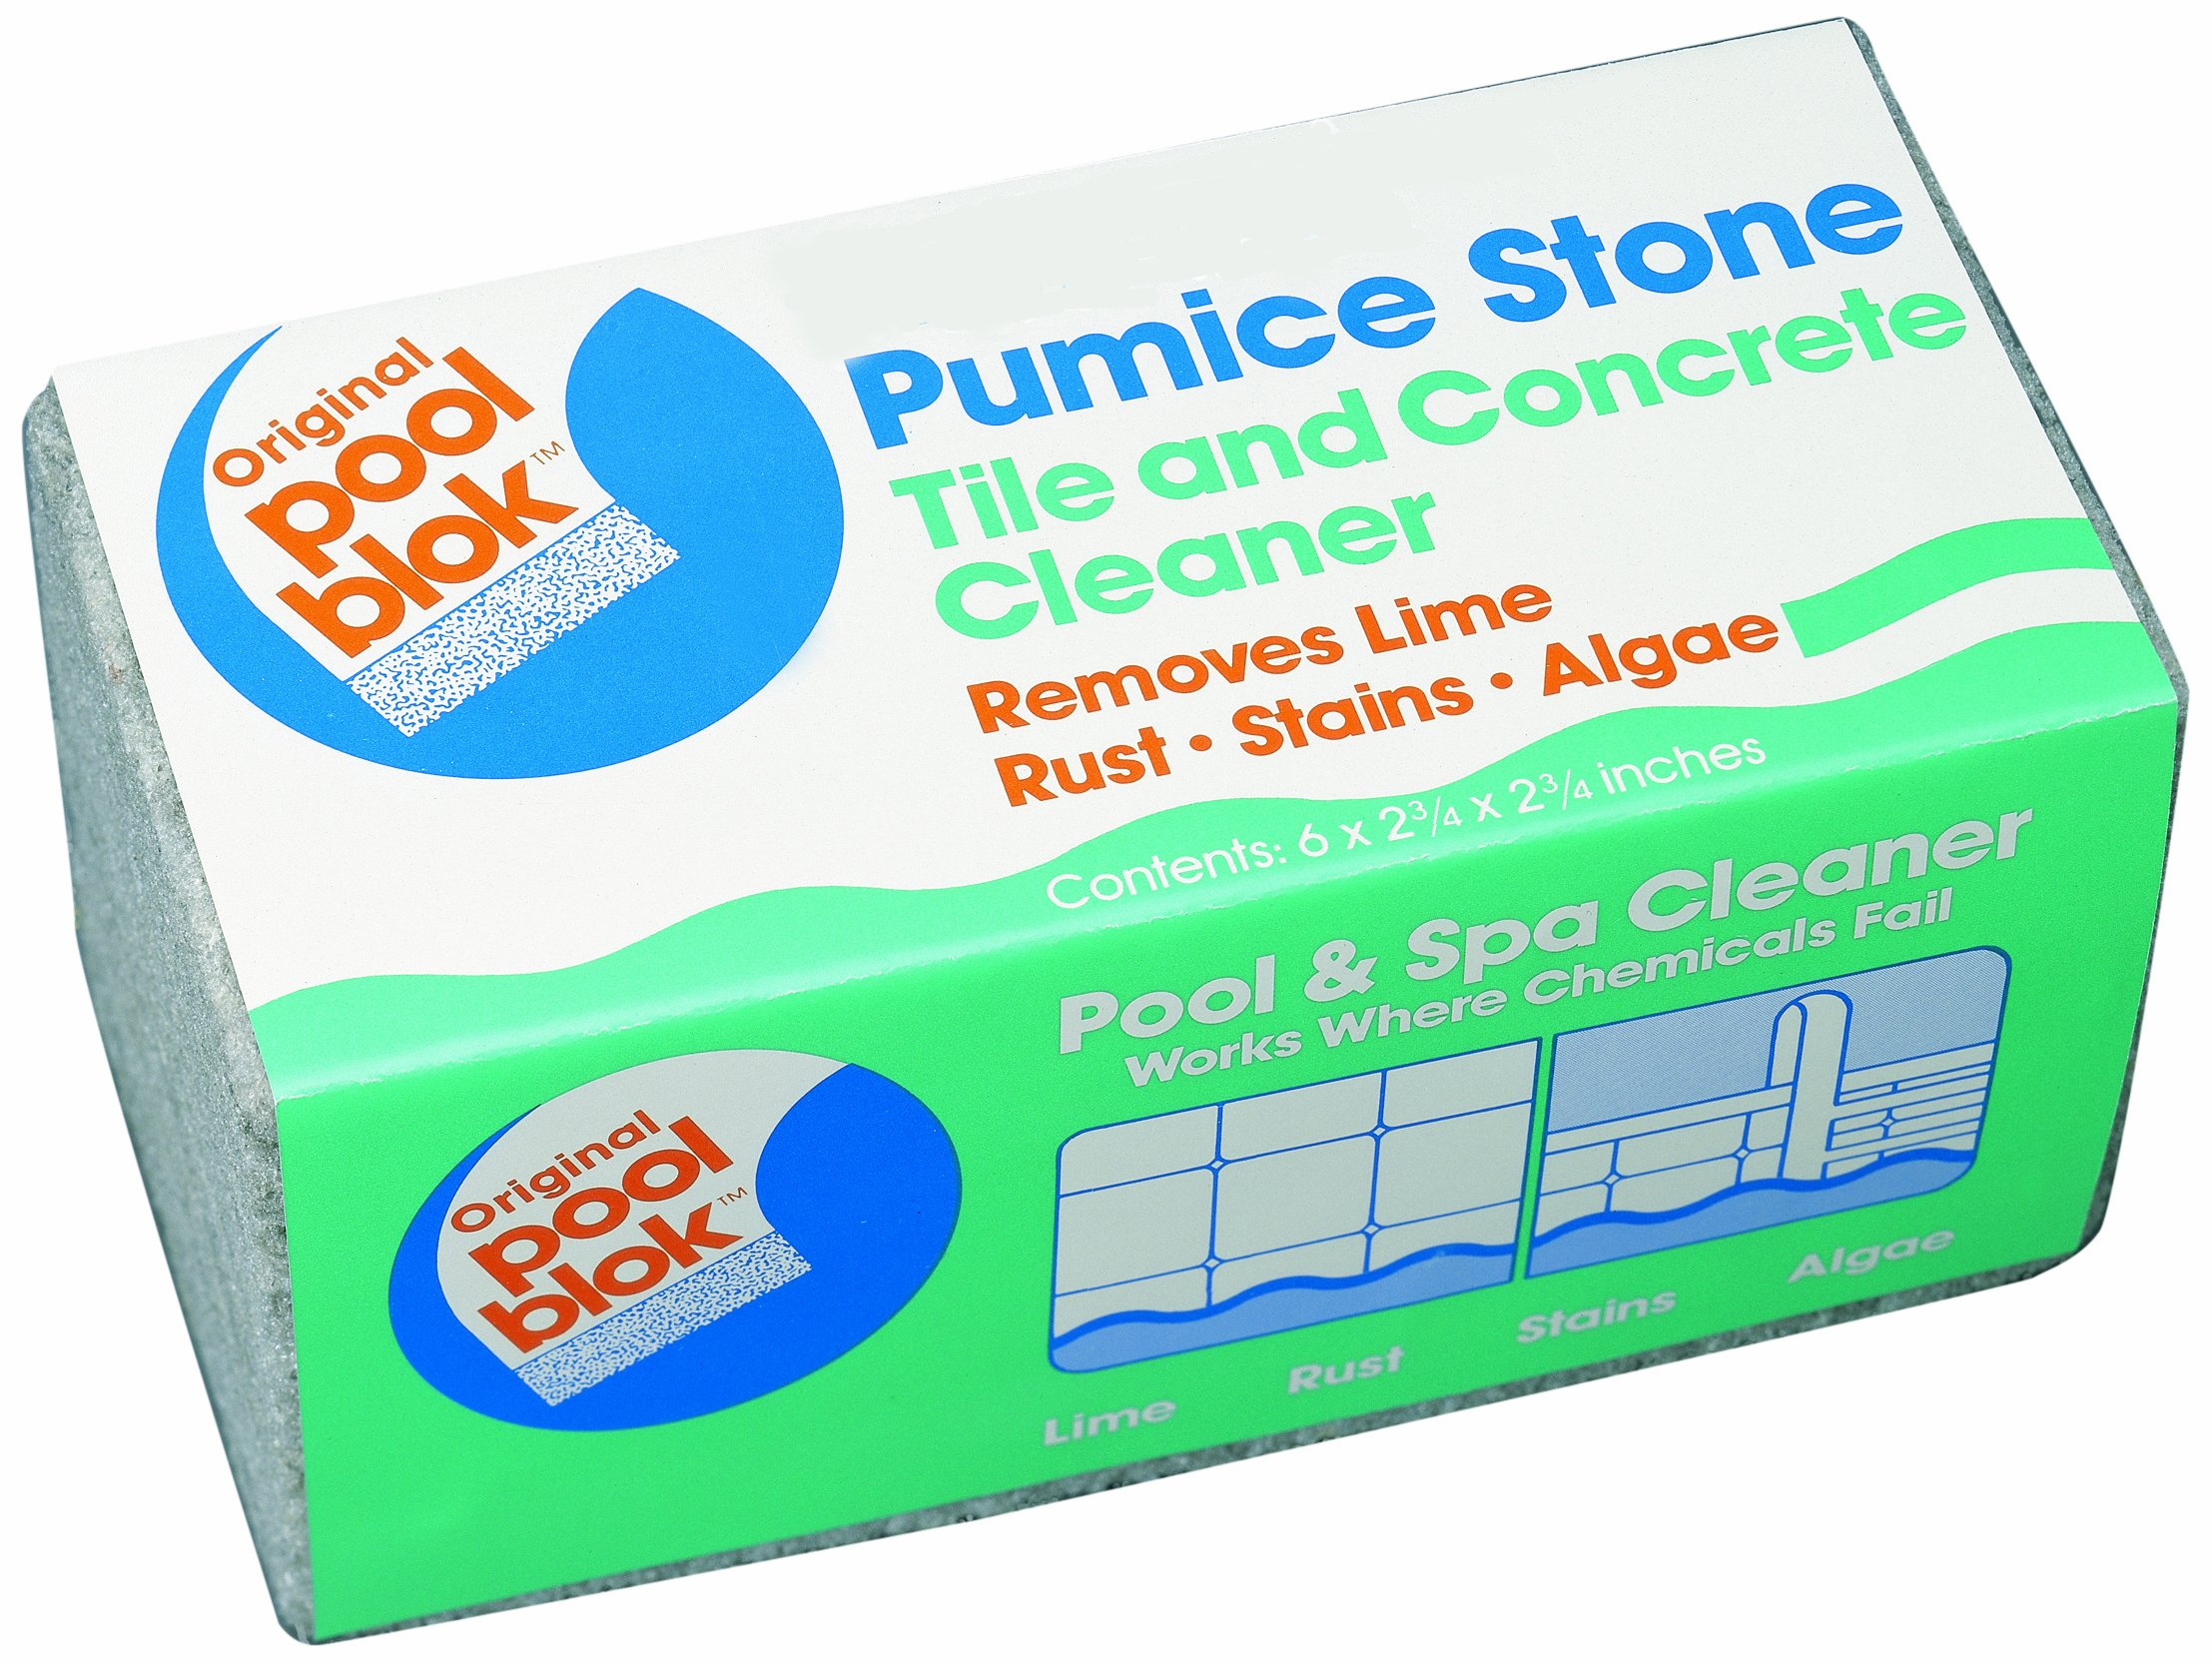 Pumie pool blok PB-12 Tile and Concrete Cleaning Pumice Stone for Pools